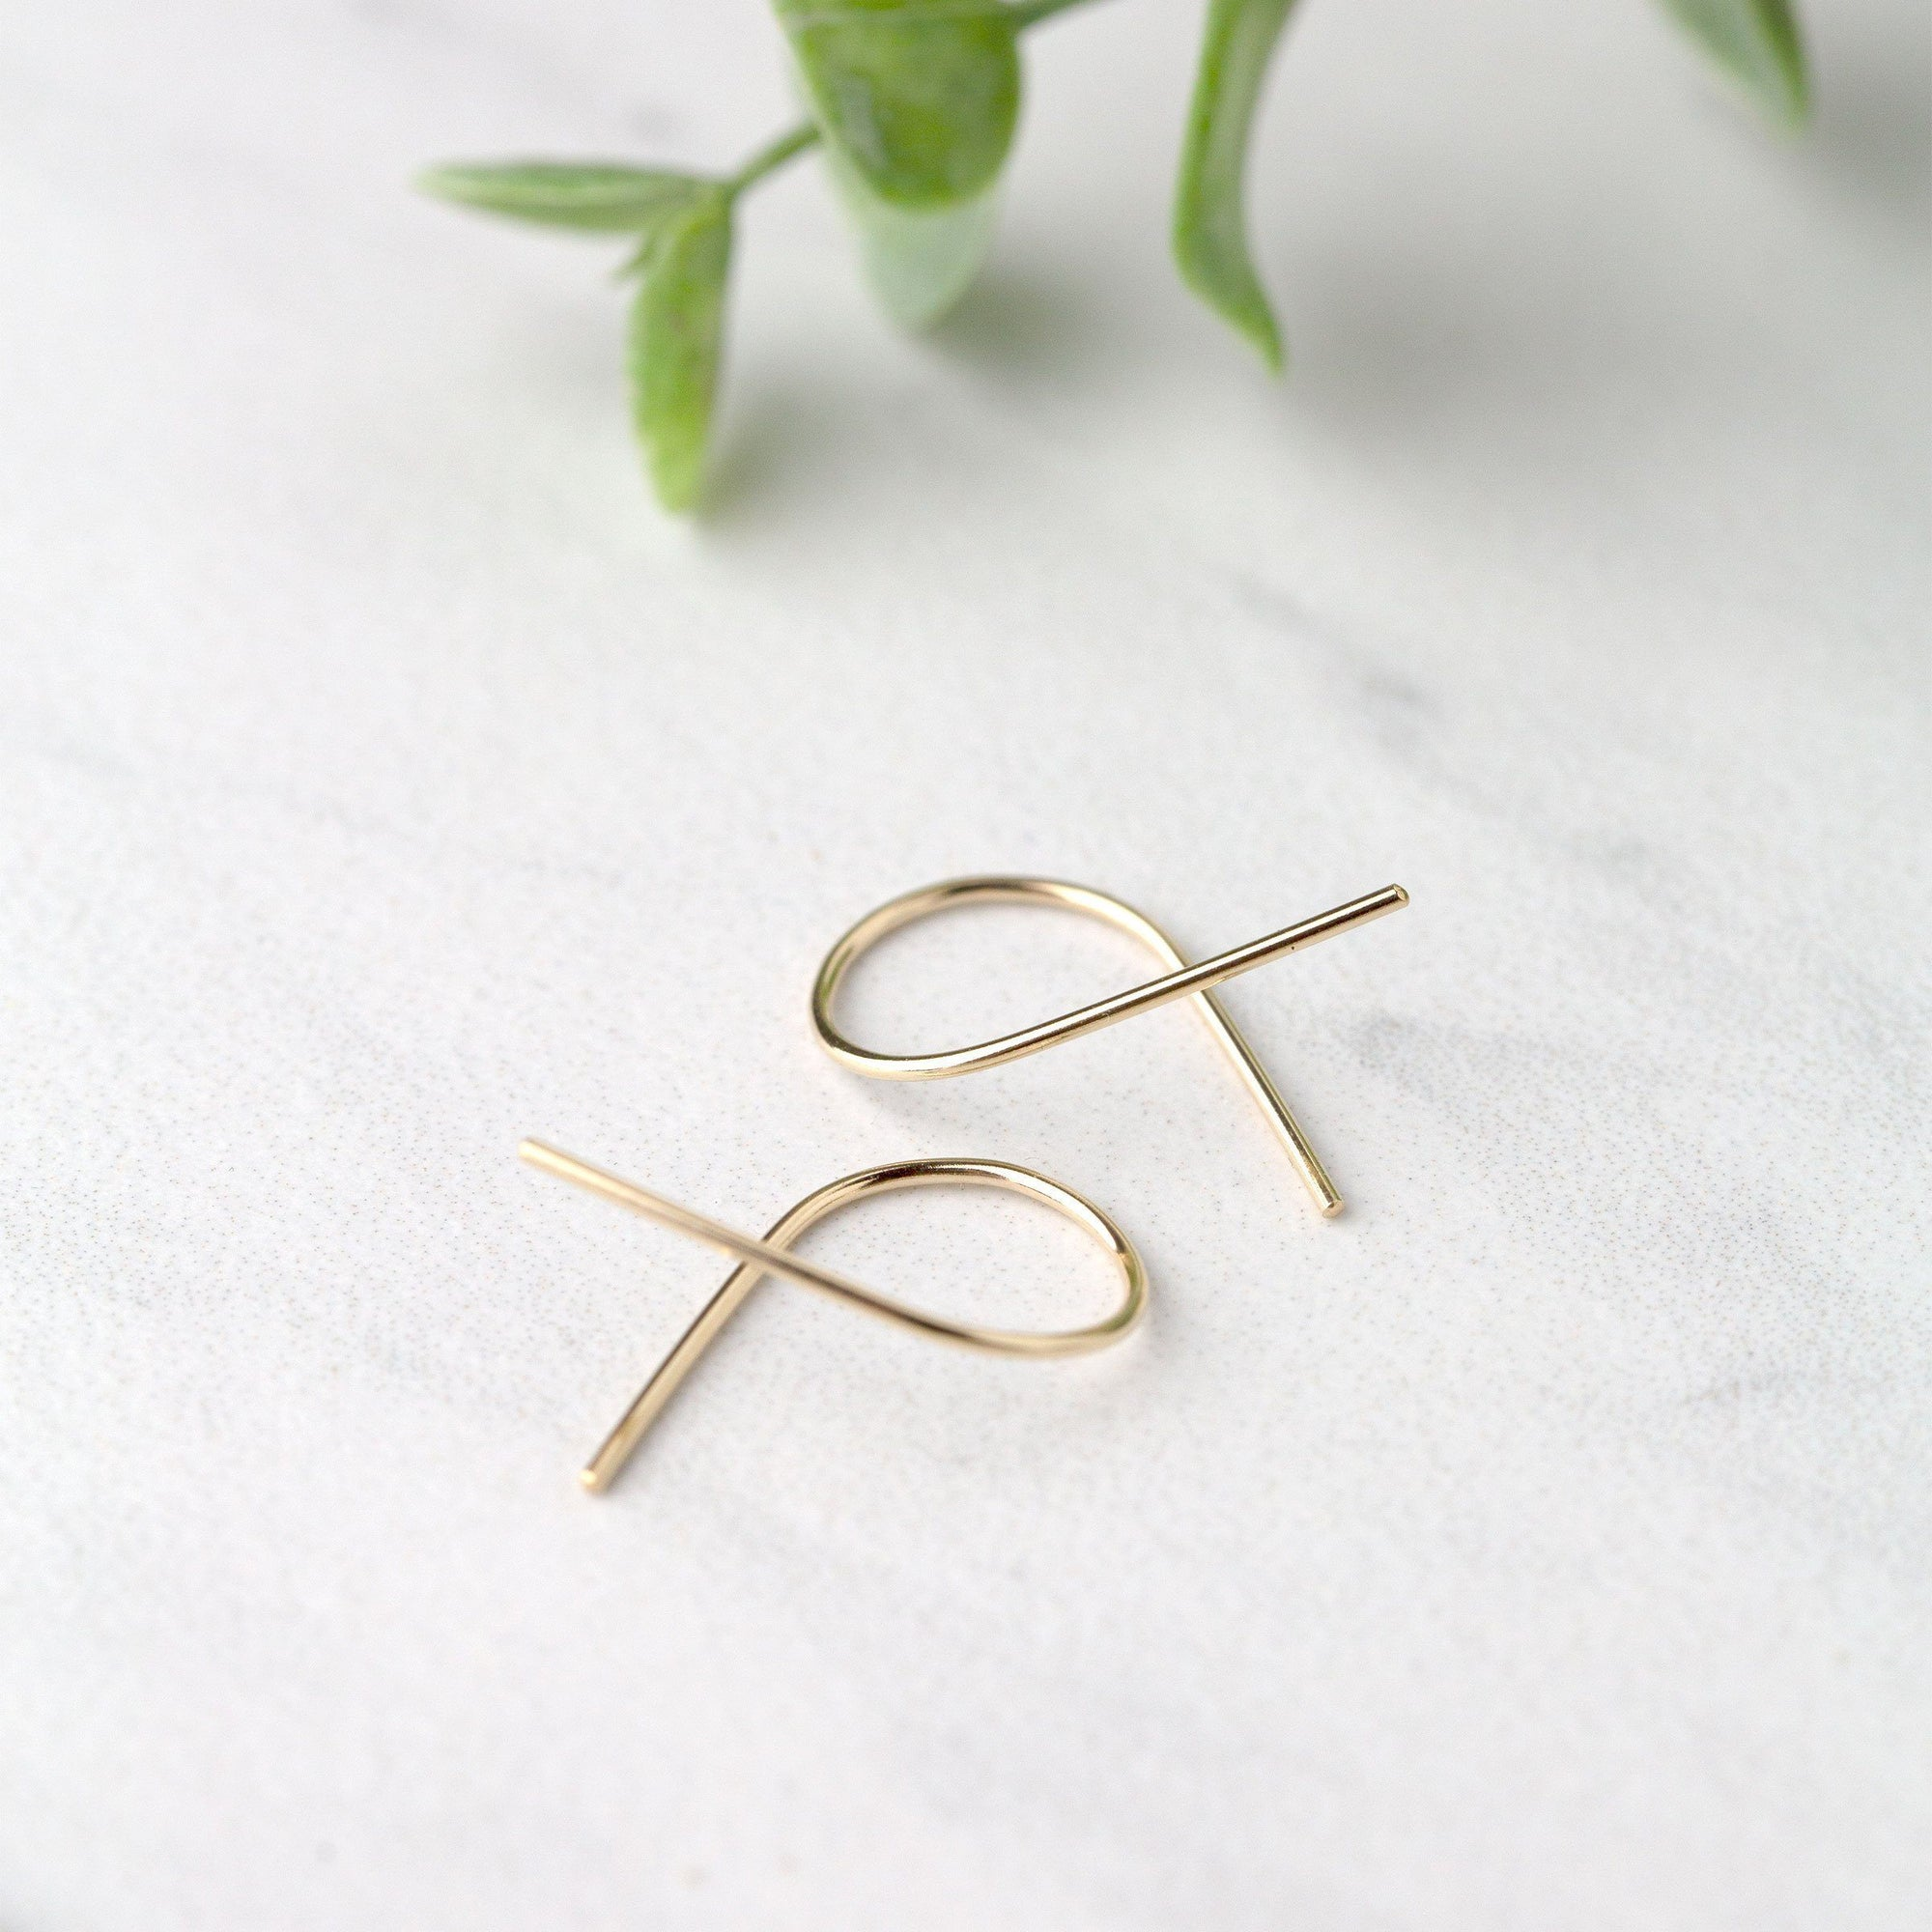 14K Gold Twist Earrings - Handmade Jewelry by Burnish